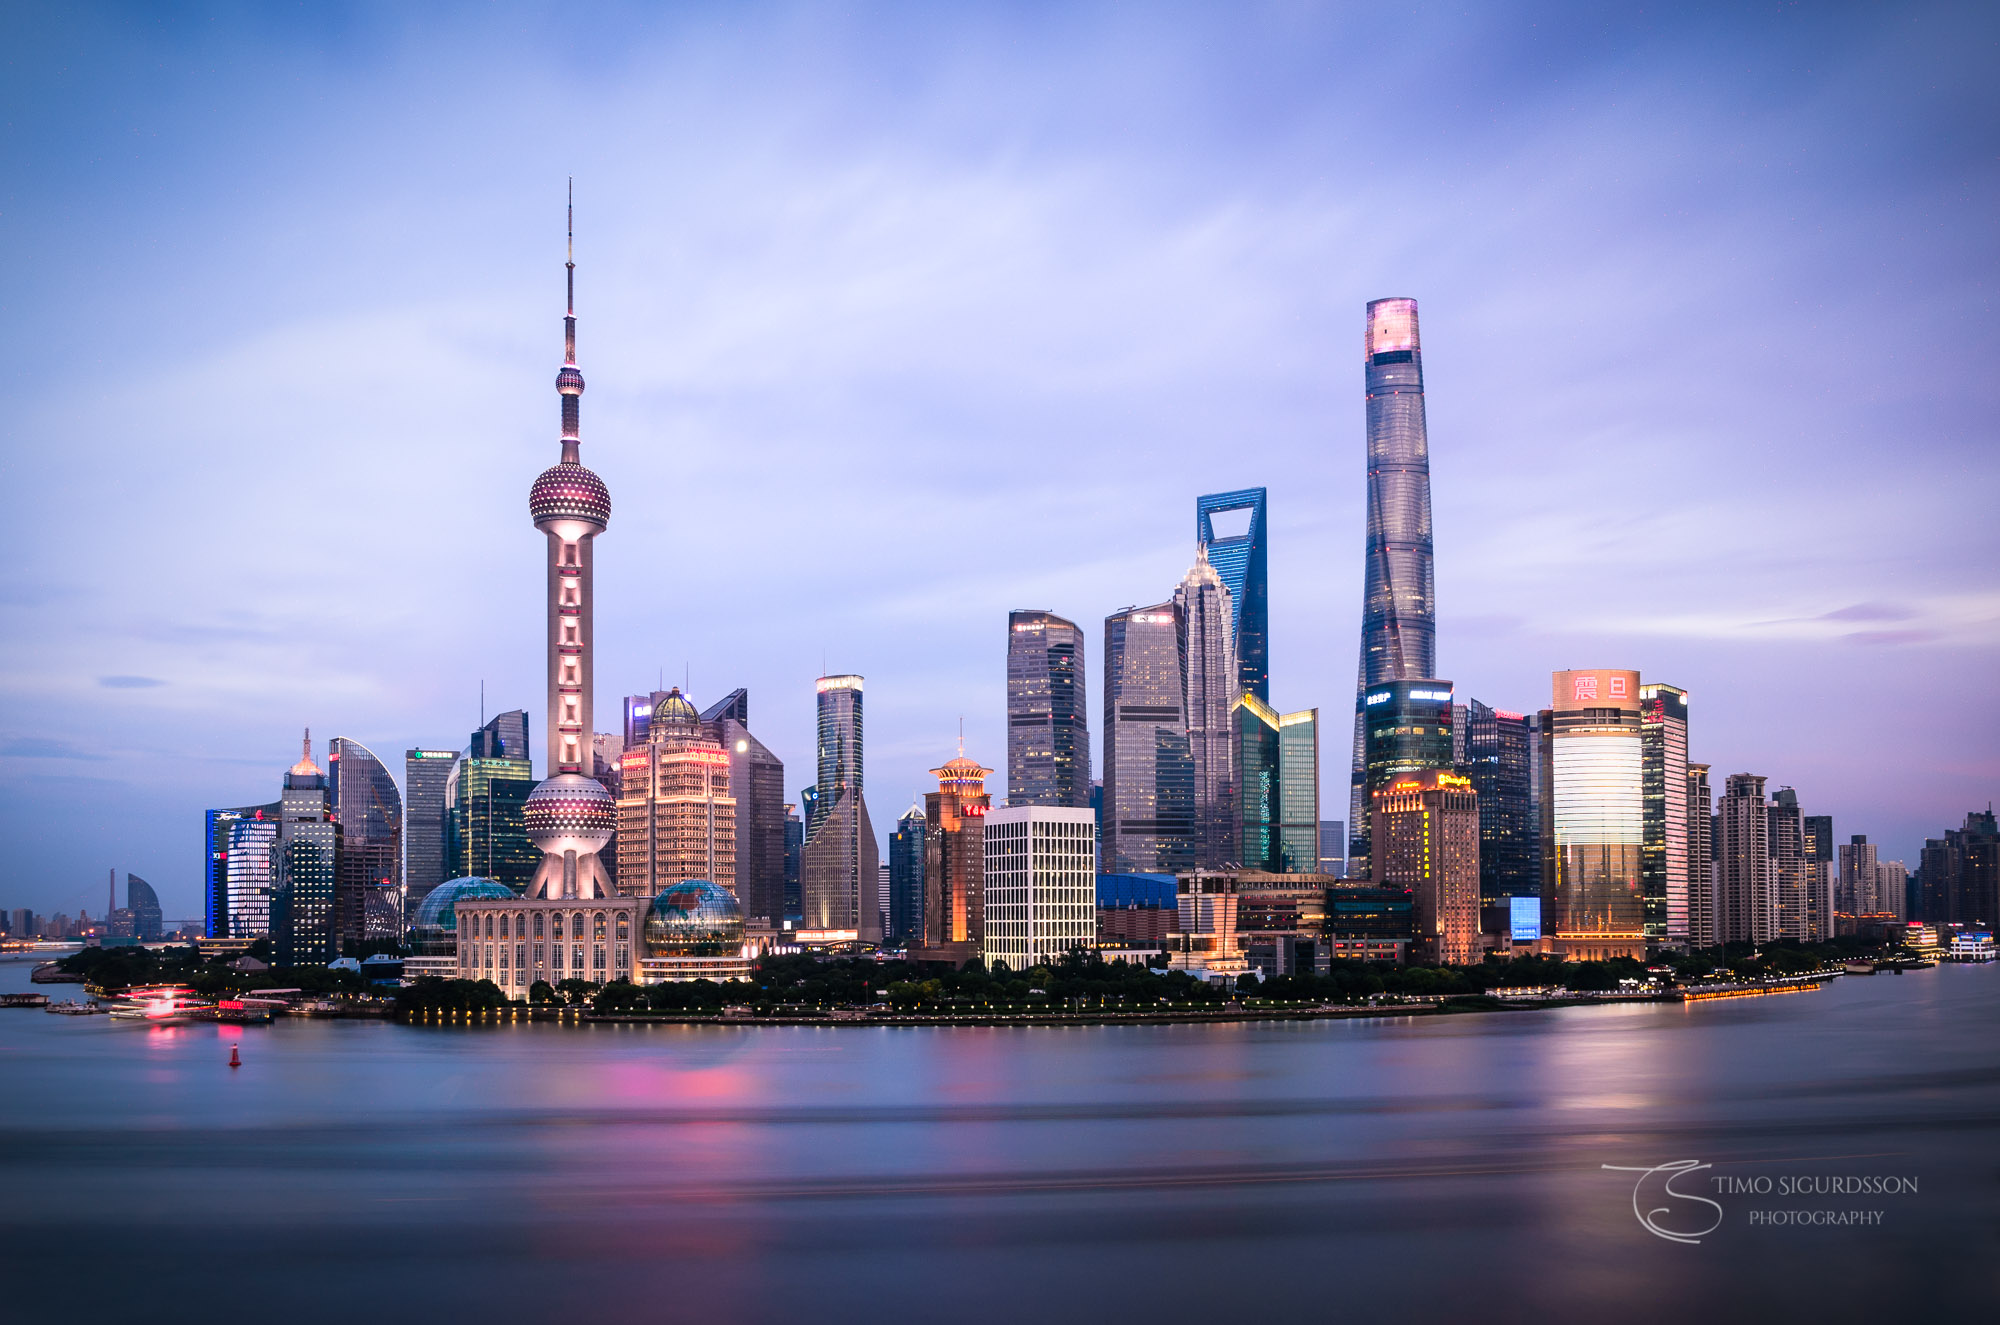 Shanghai, China. Pudong skyline at dusk. Huangpu river.